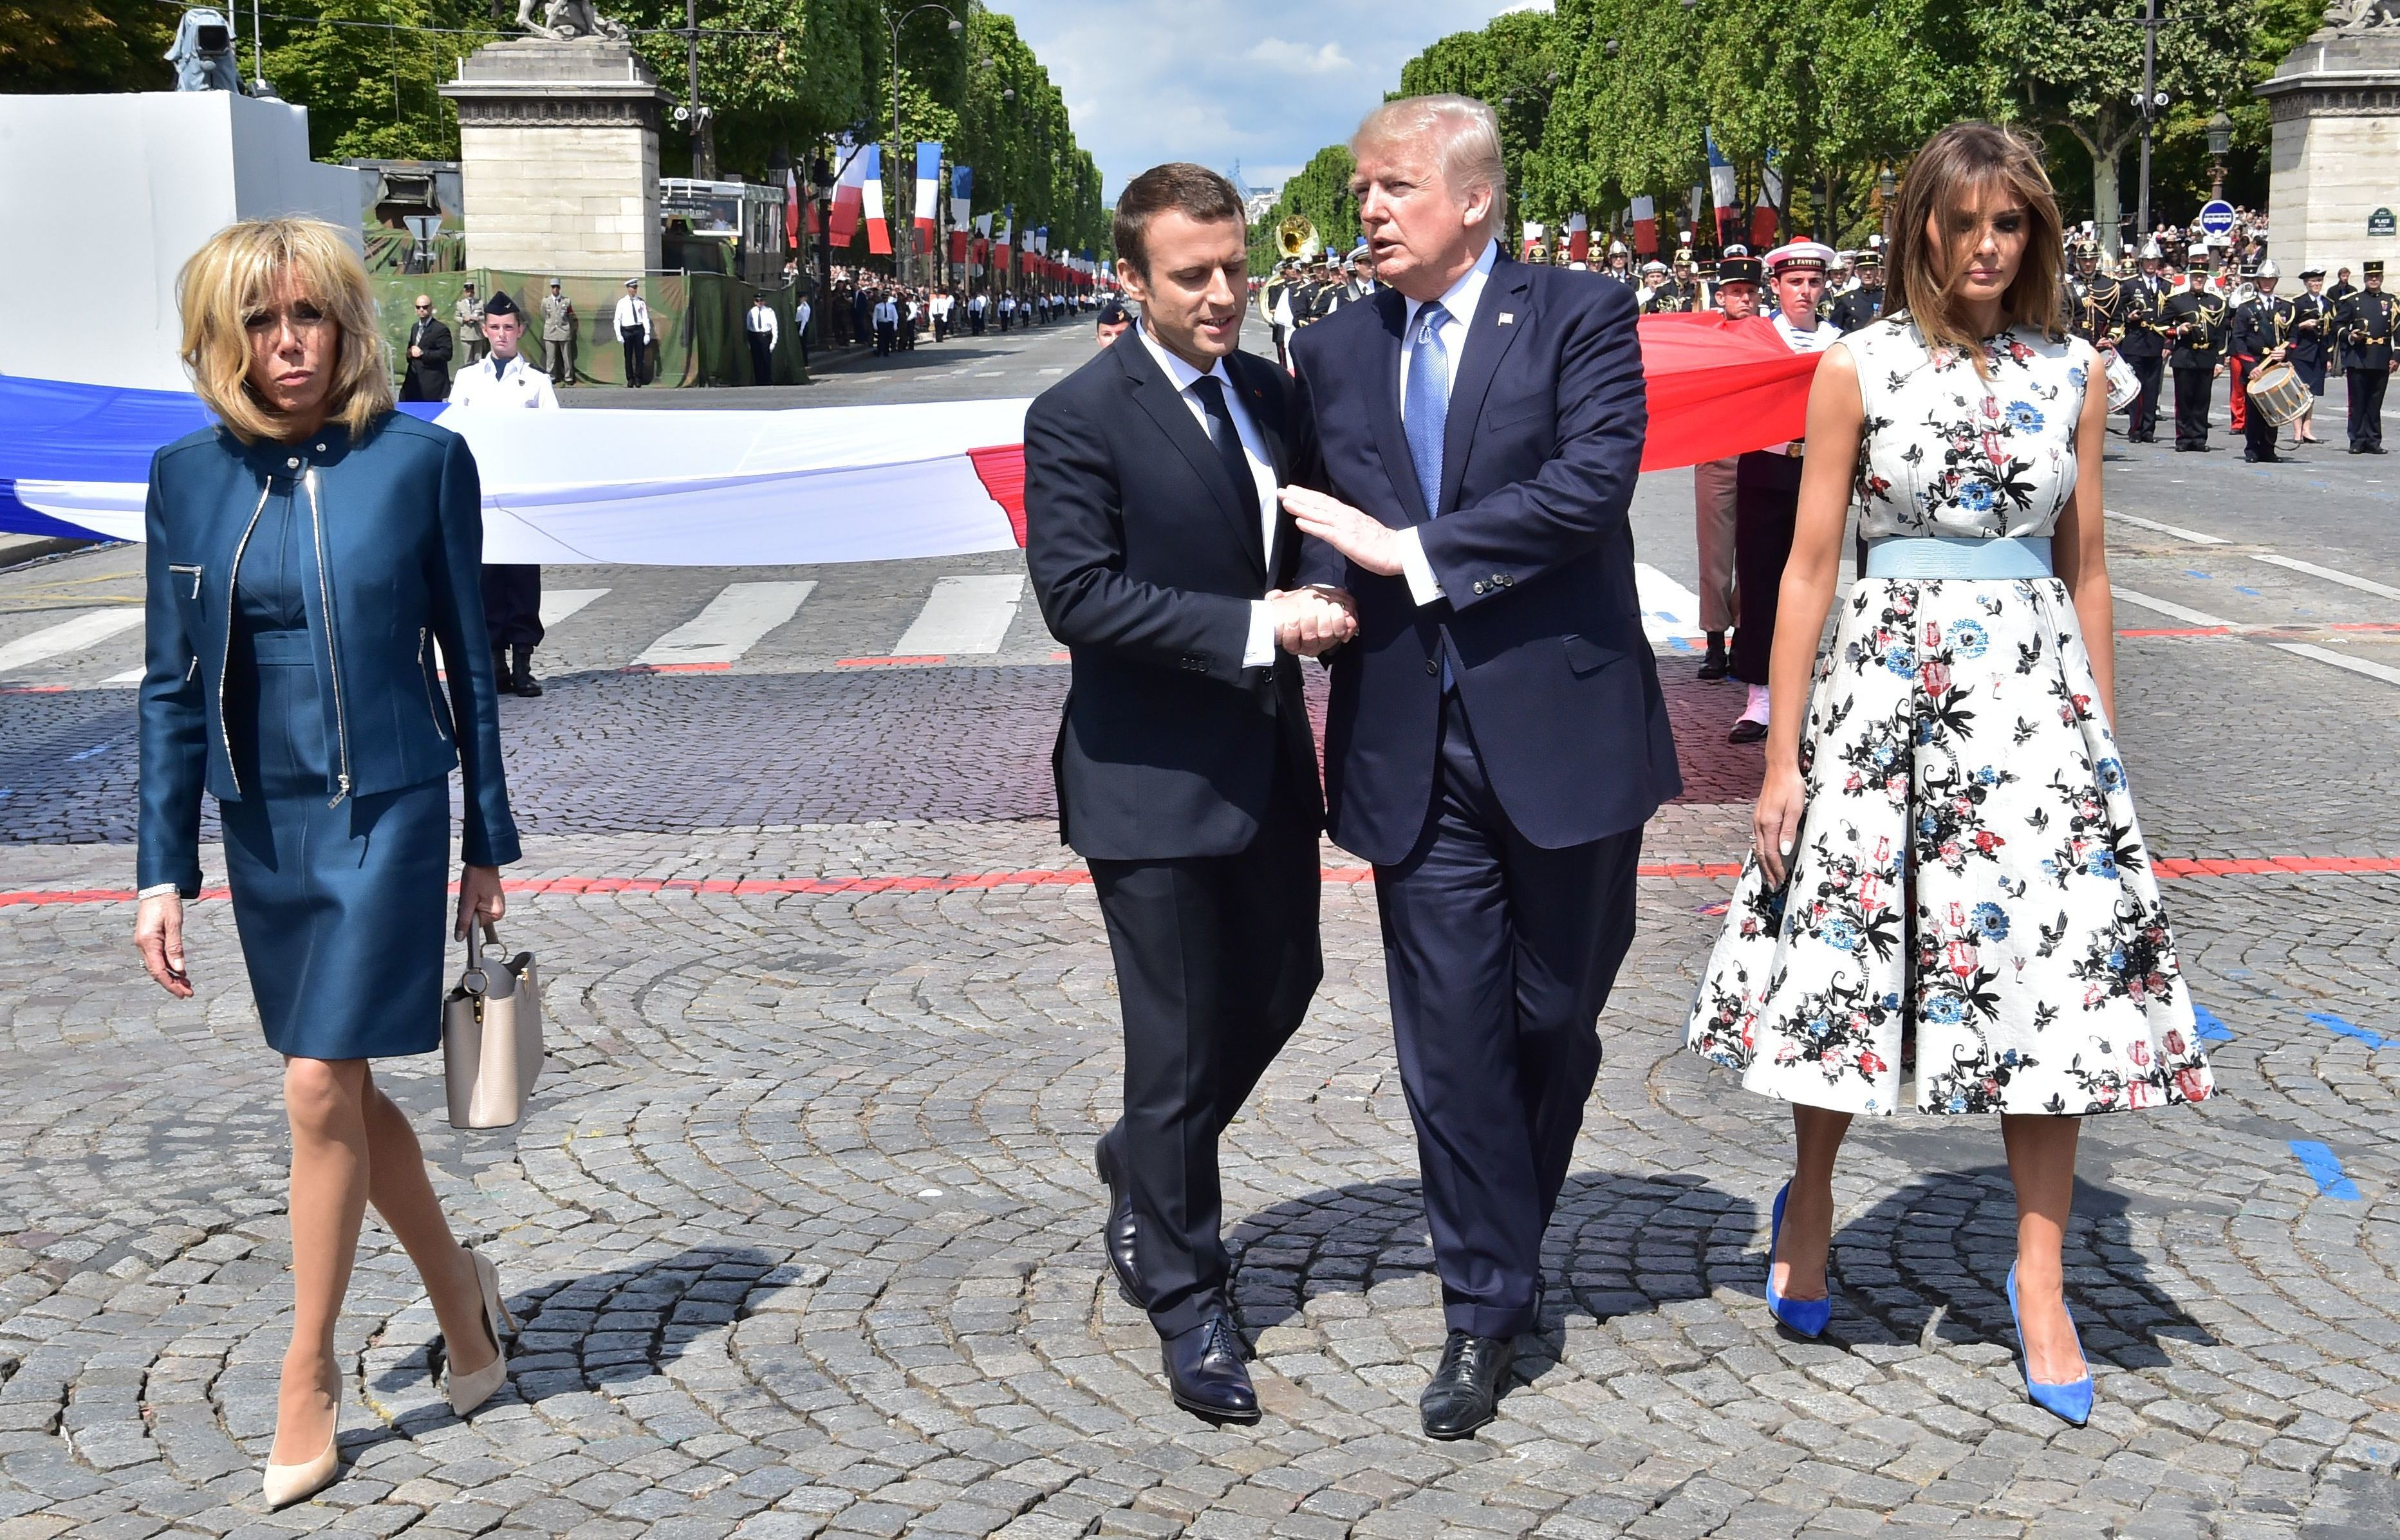 Macron S Strategy For Trump In Paris Long Handshakes And Military Spectacles The Two Way Npr